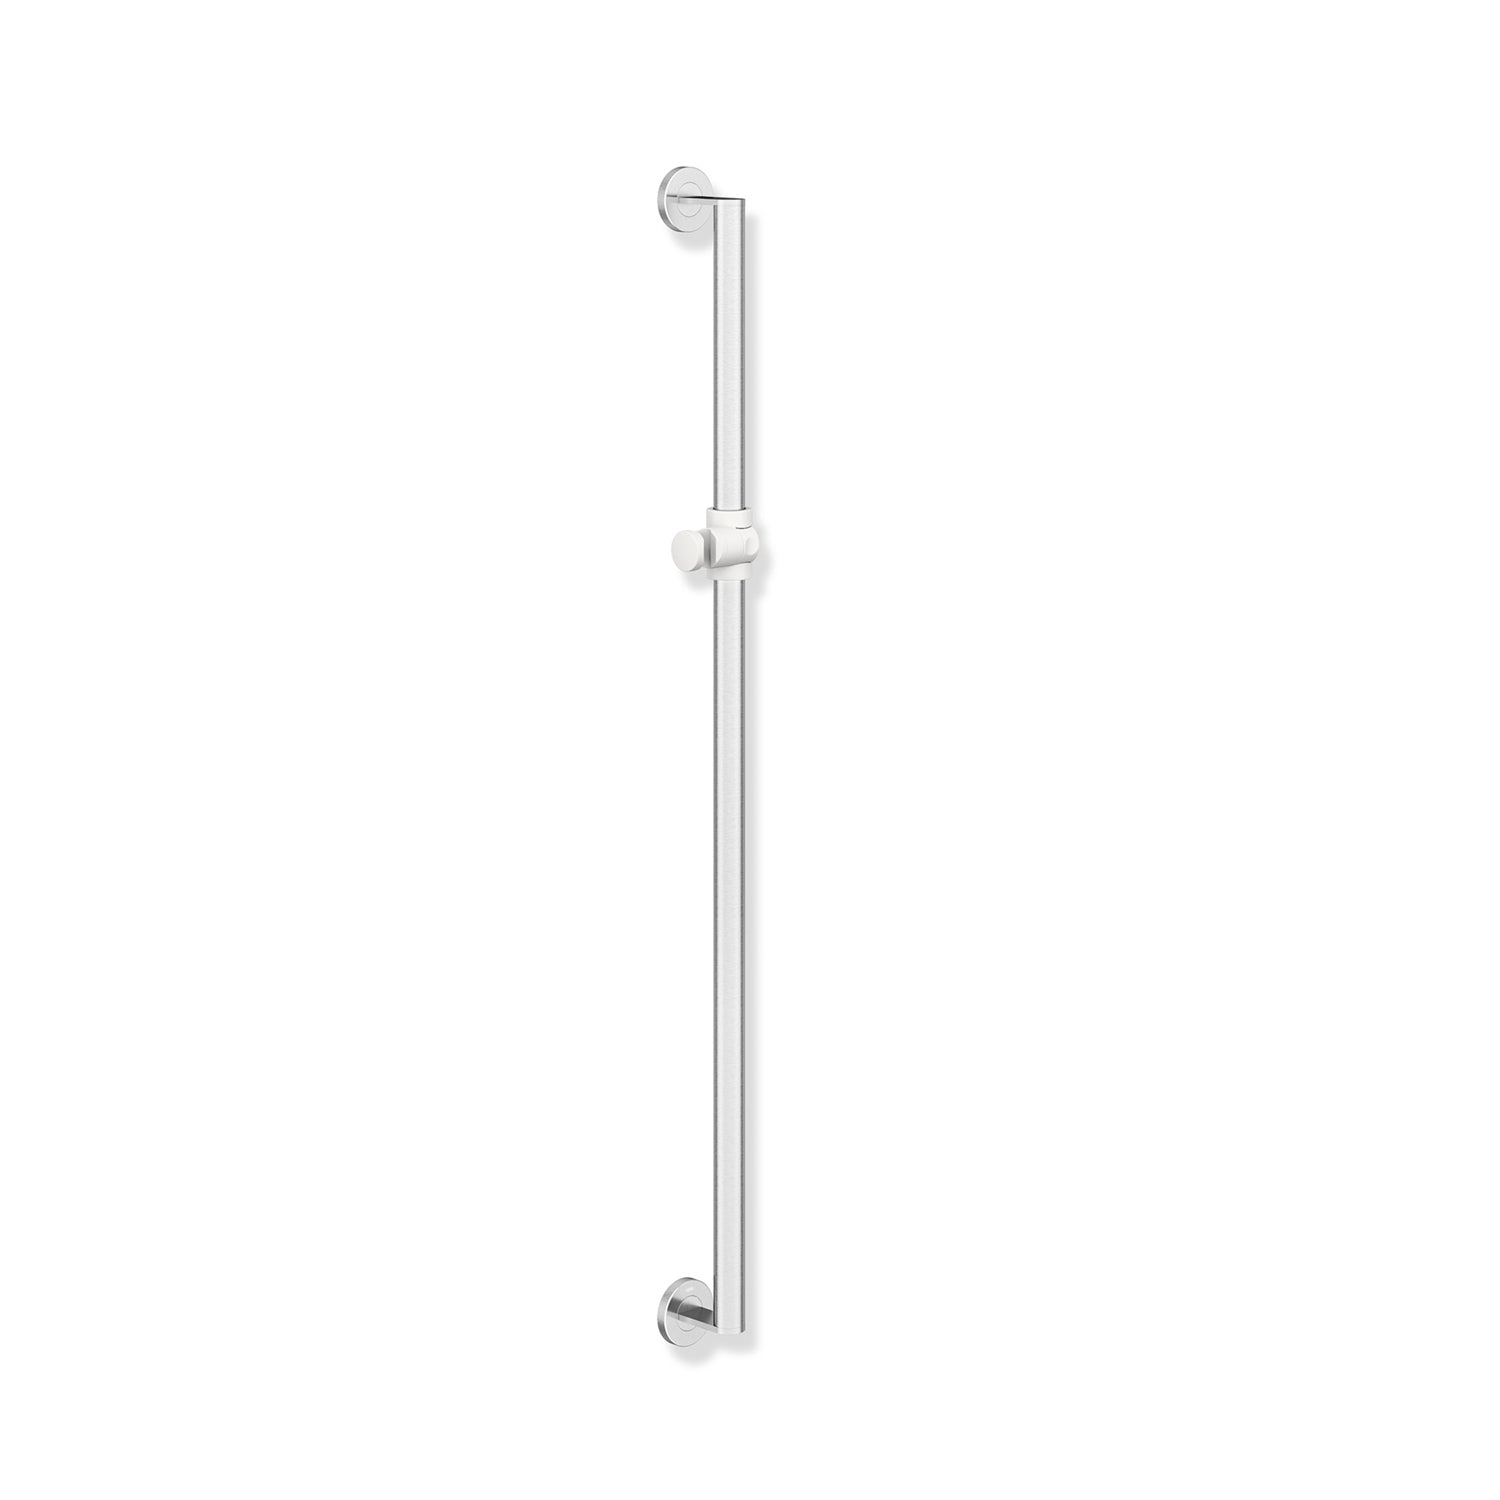 900mm Freestyle Supportive Shower Rail with a satin steel finish on a white background